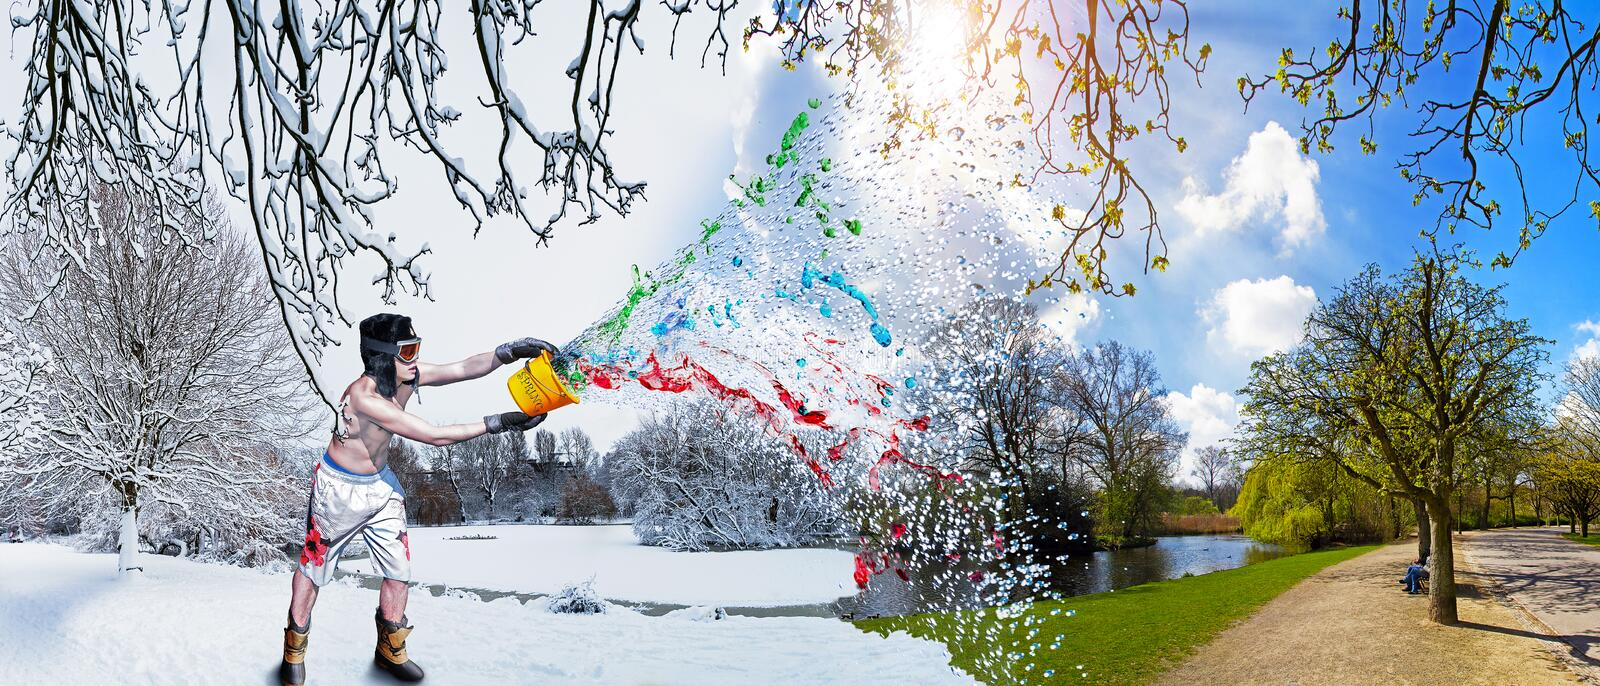 Spring splash!. A young handsome man in shorts throws spring into the world and ends winter with a colorful splash stock photos